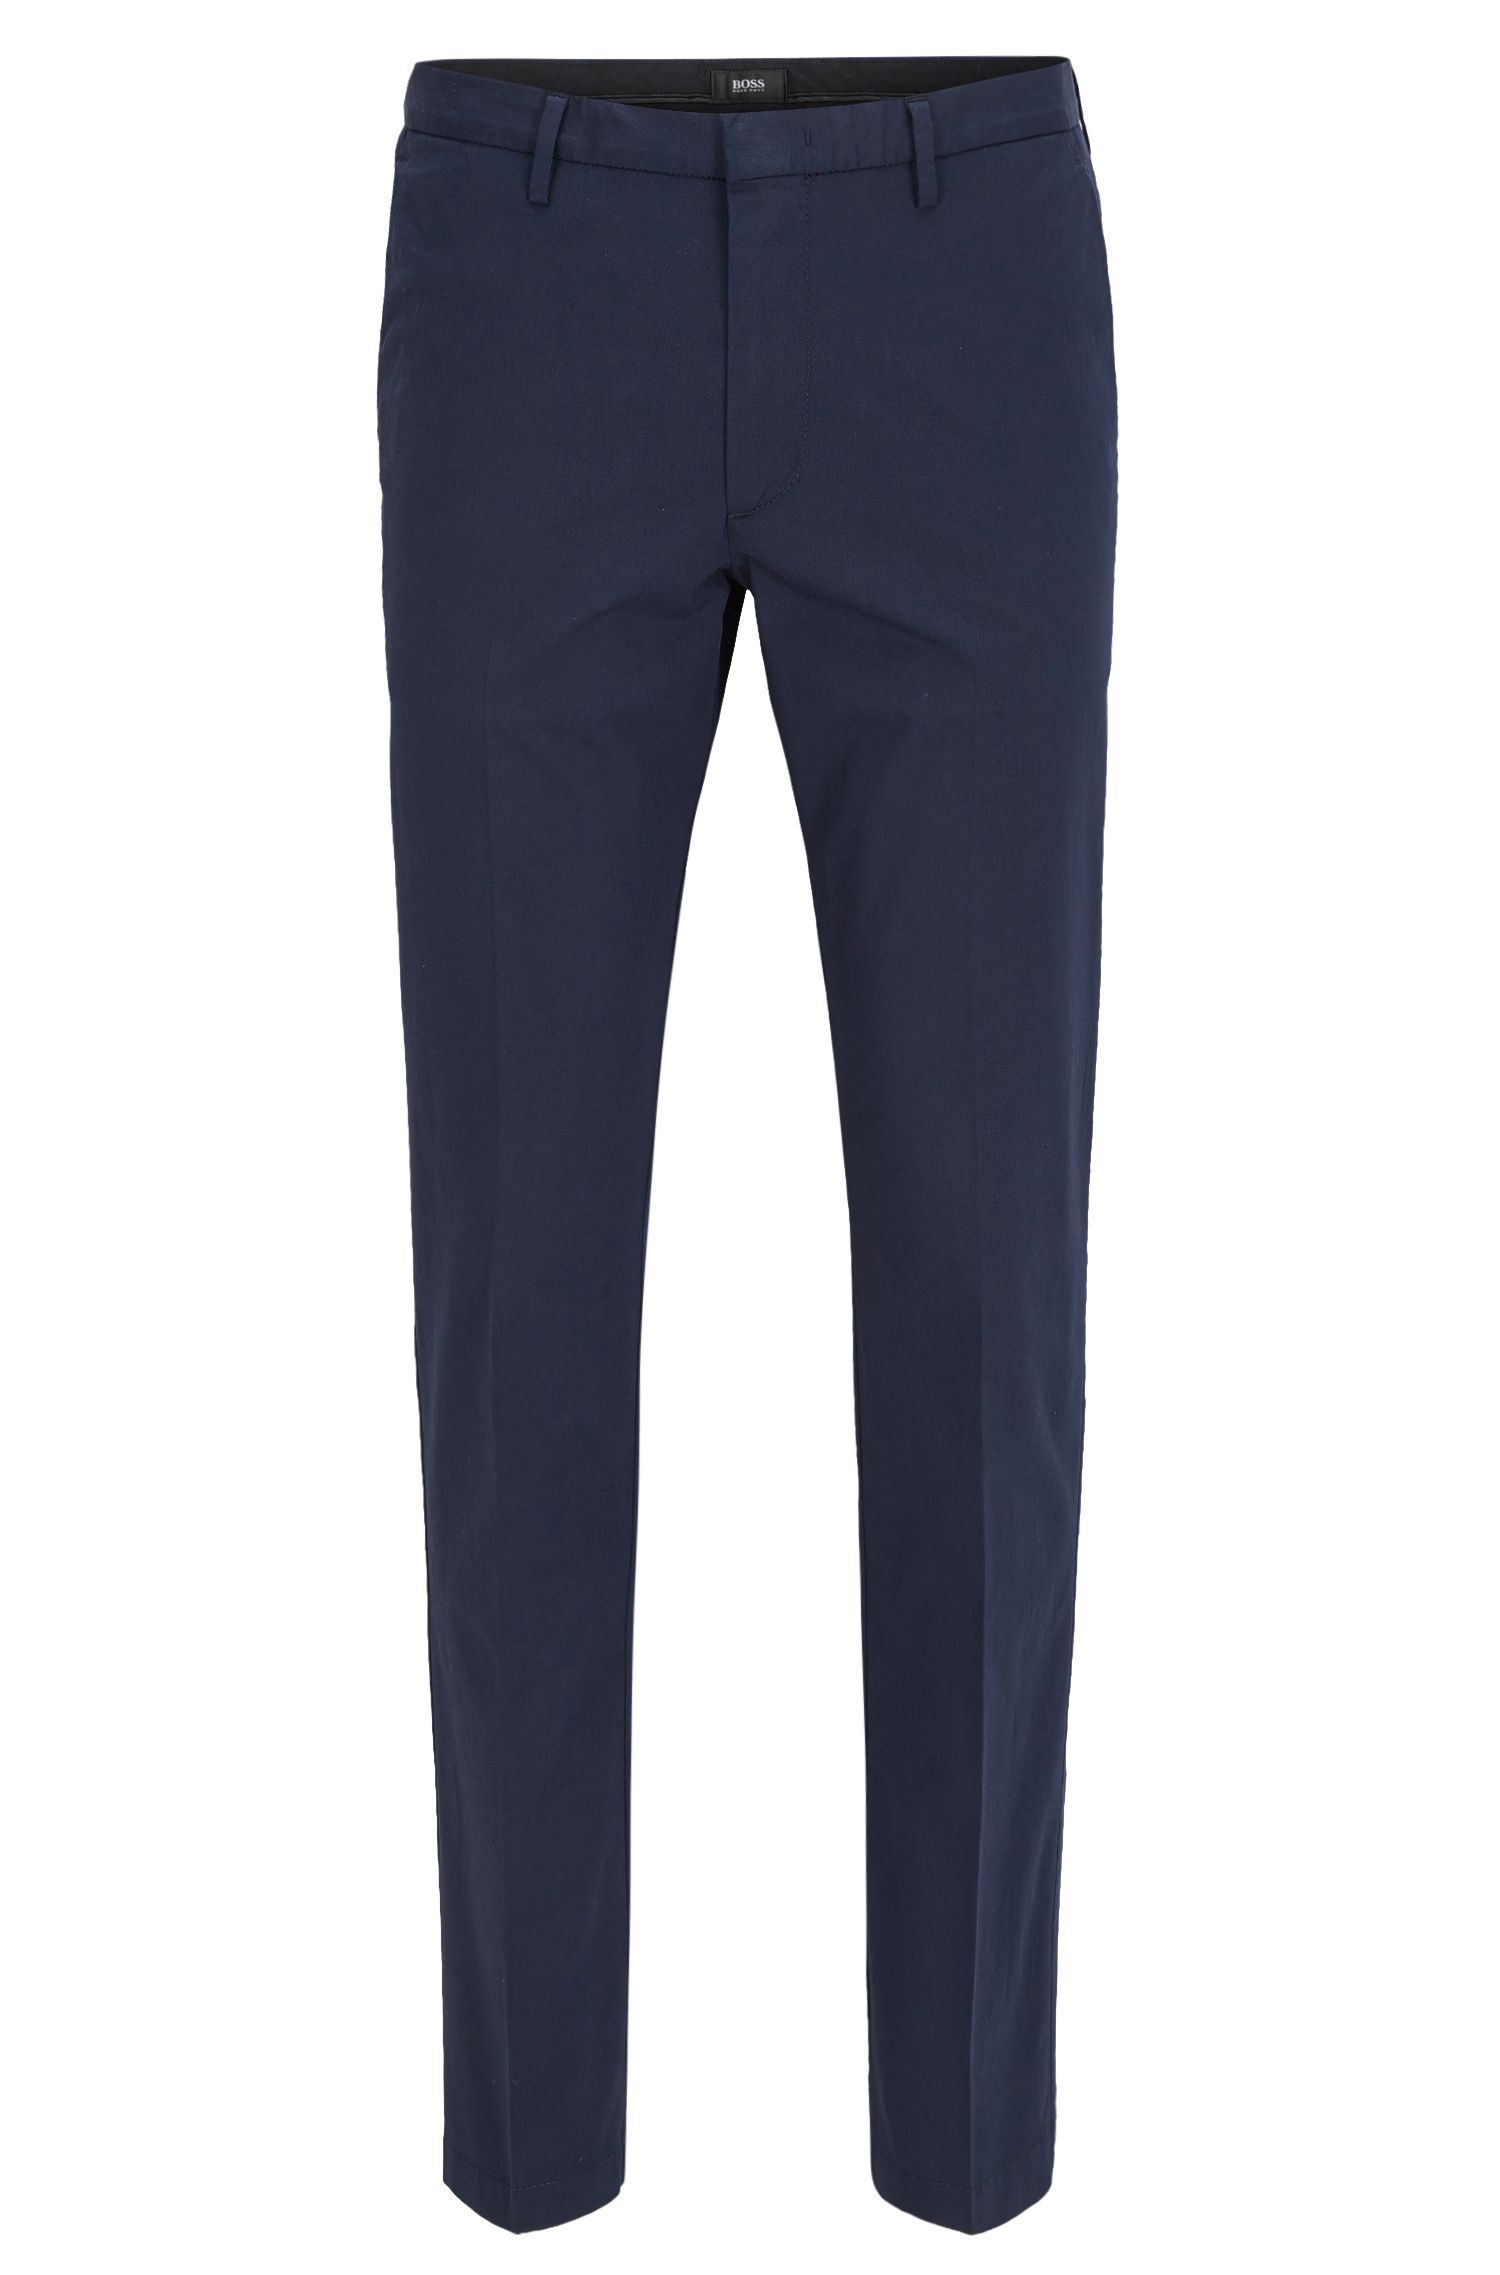 'Kaito Travel W' | Slim Fit, Italian Stretch Cotton Pants